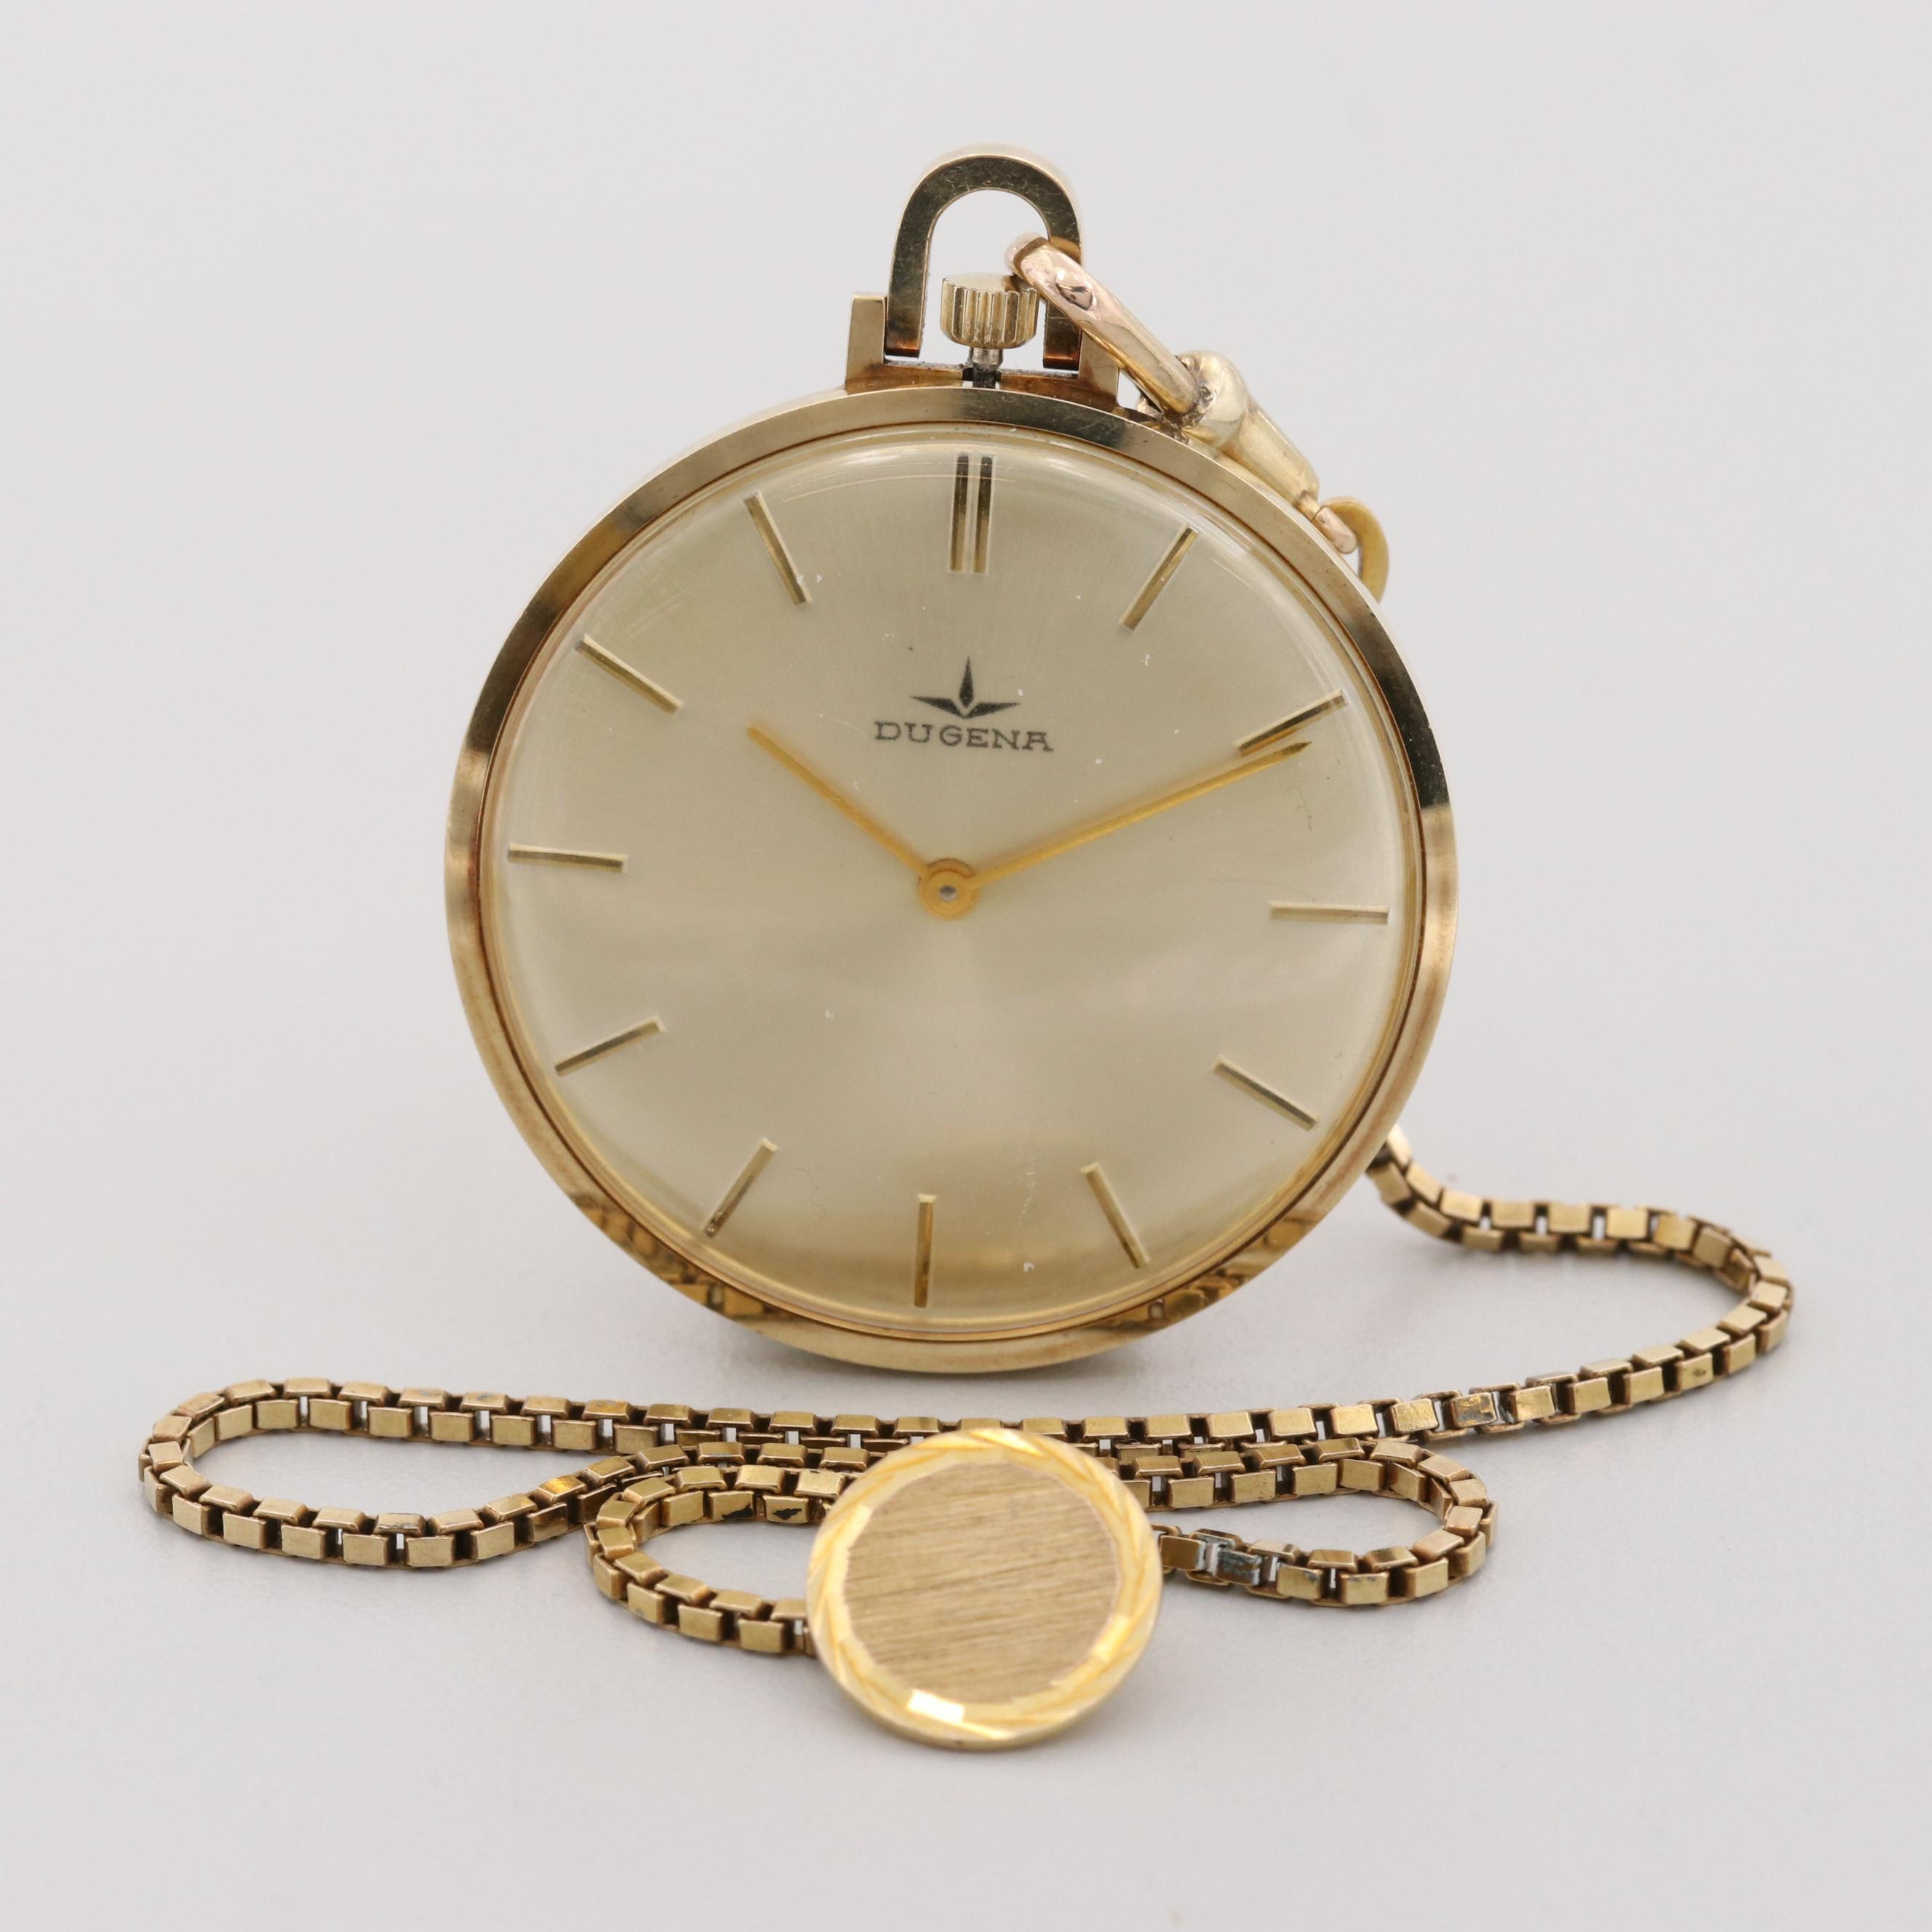 Vintage Dugena 14K Gold Open Face Pocket Watch with 8k Gold Chain and Button Fob